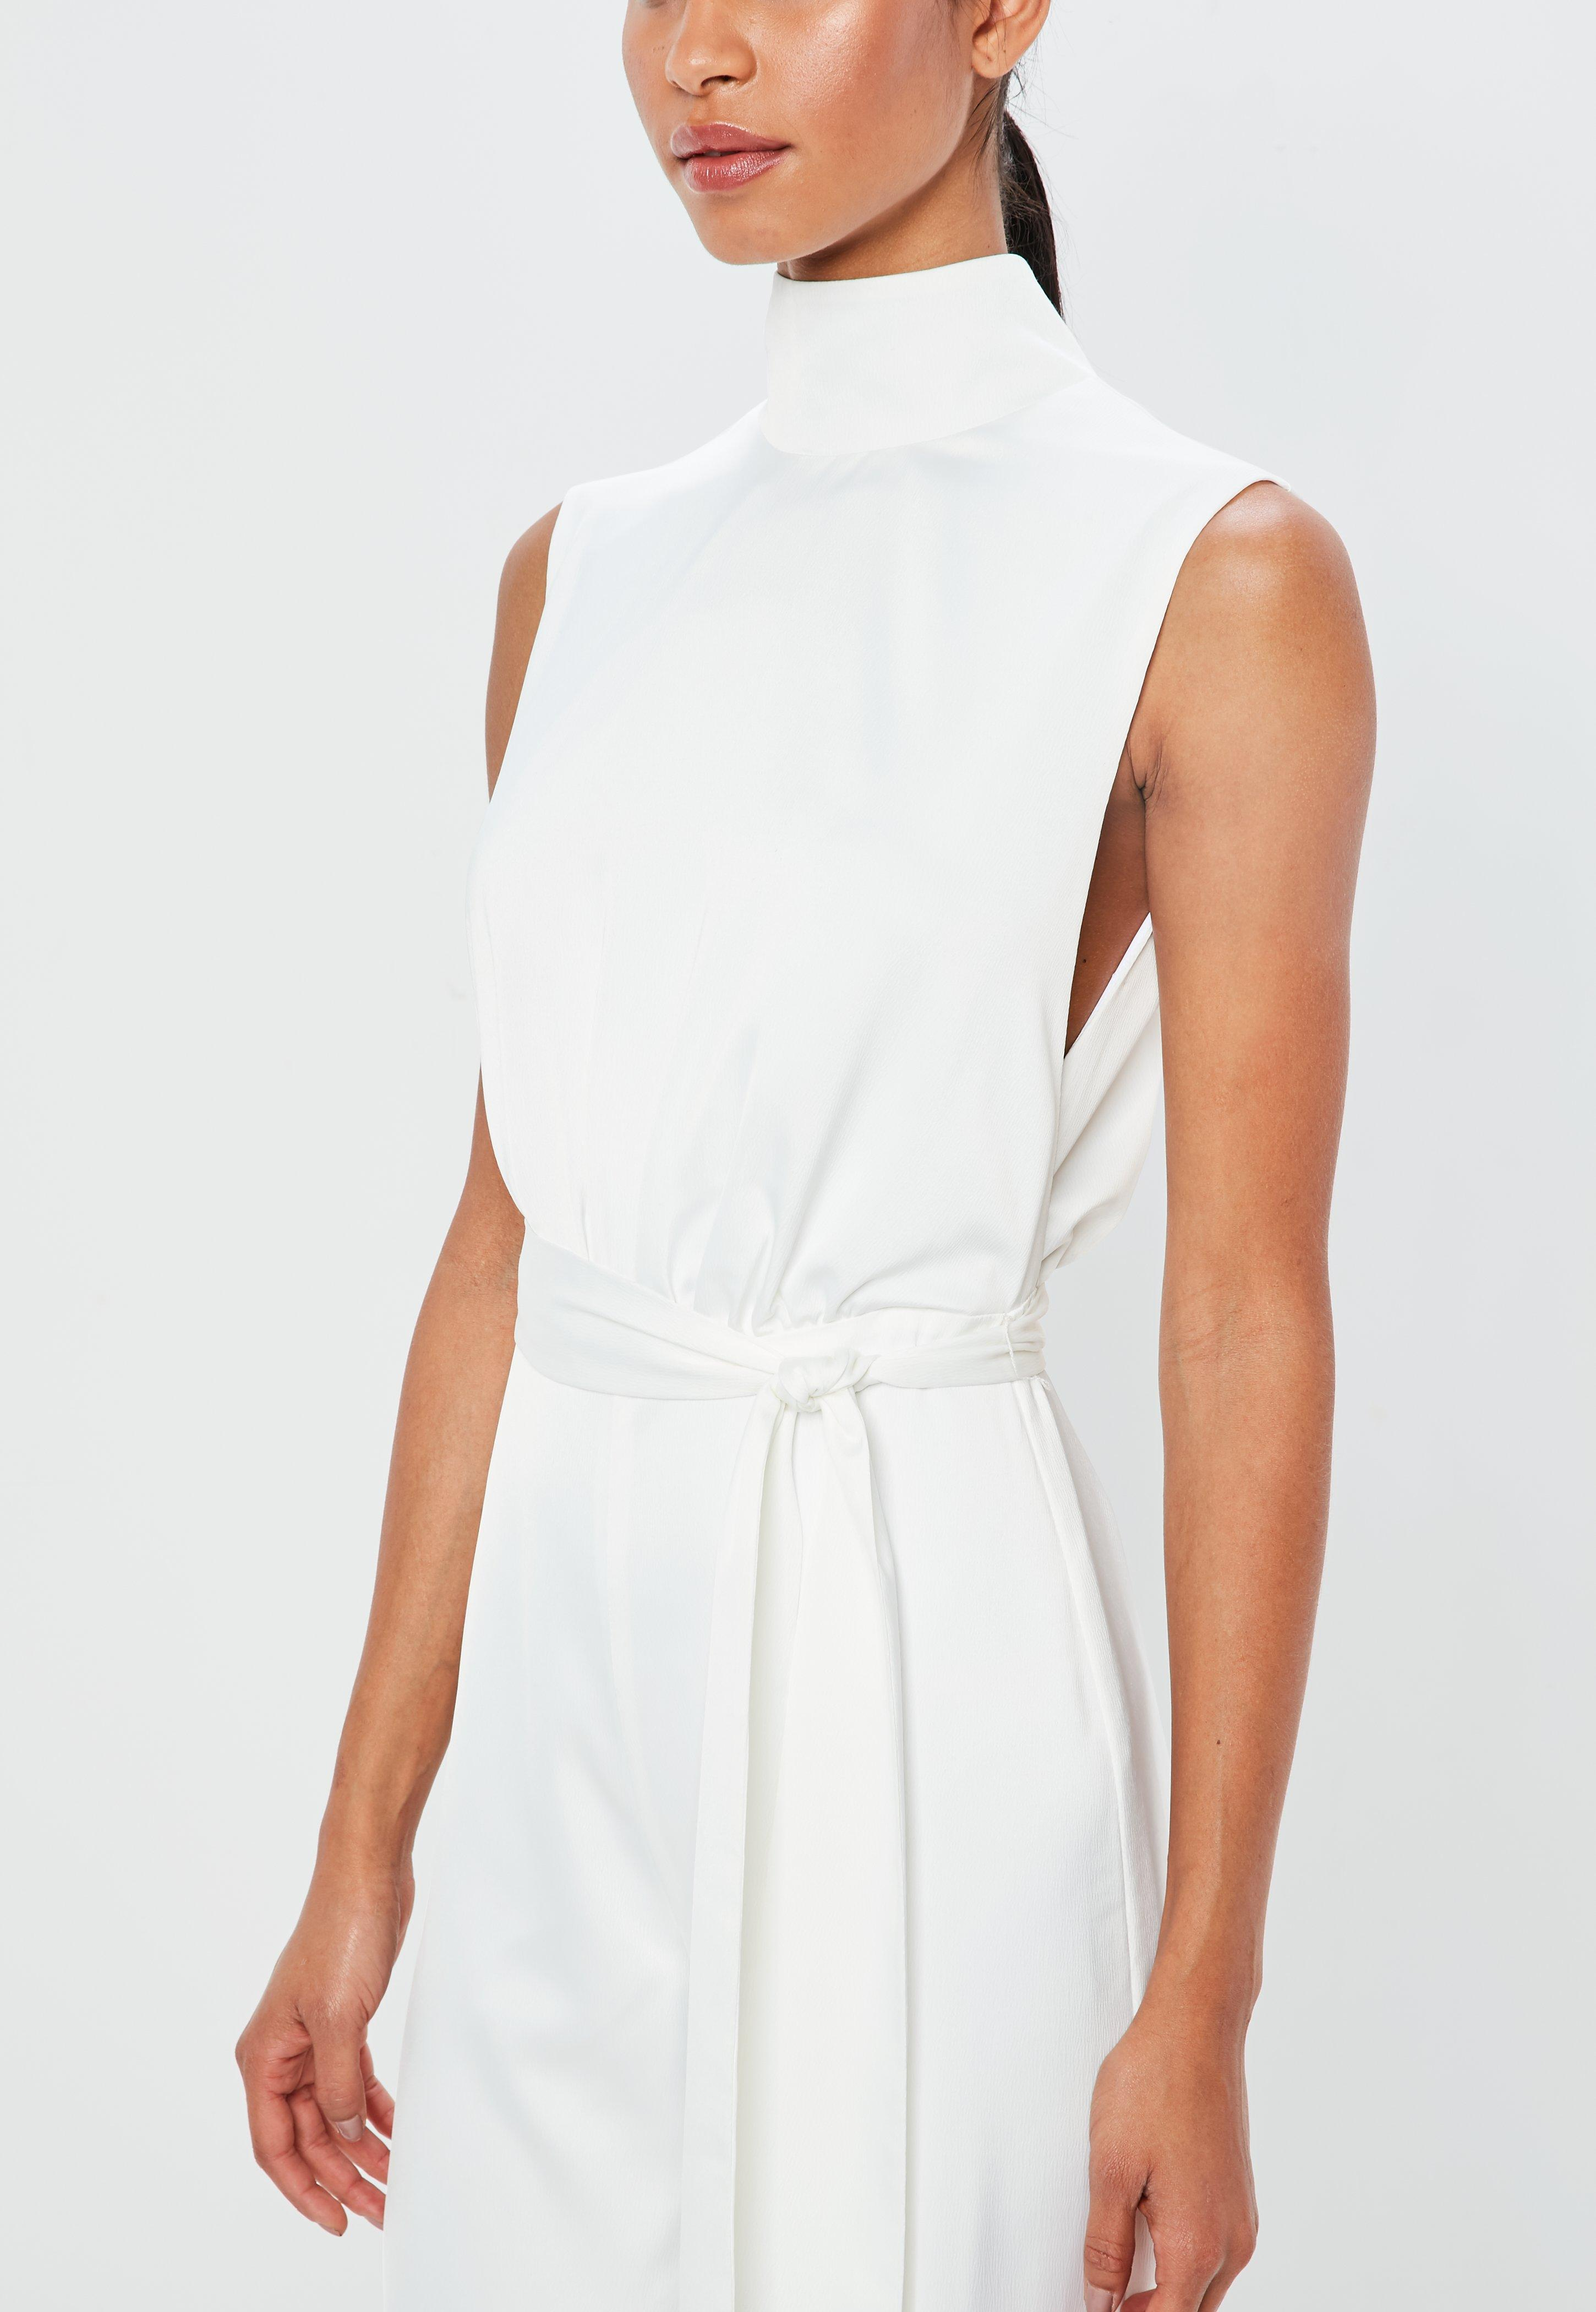 bb6f5da25 Lyst - Missguided Peace + Love White Satin High Neck Belted Jumpsuit ...